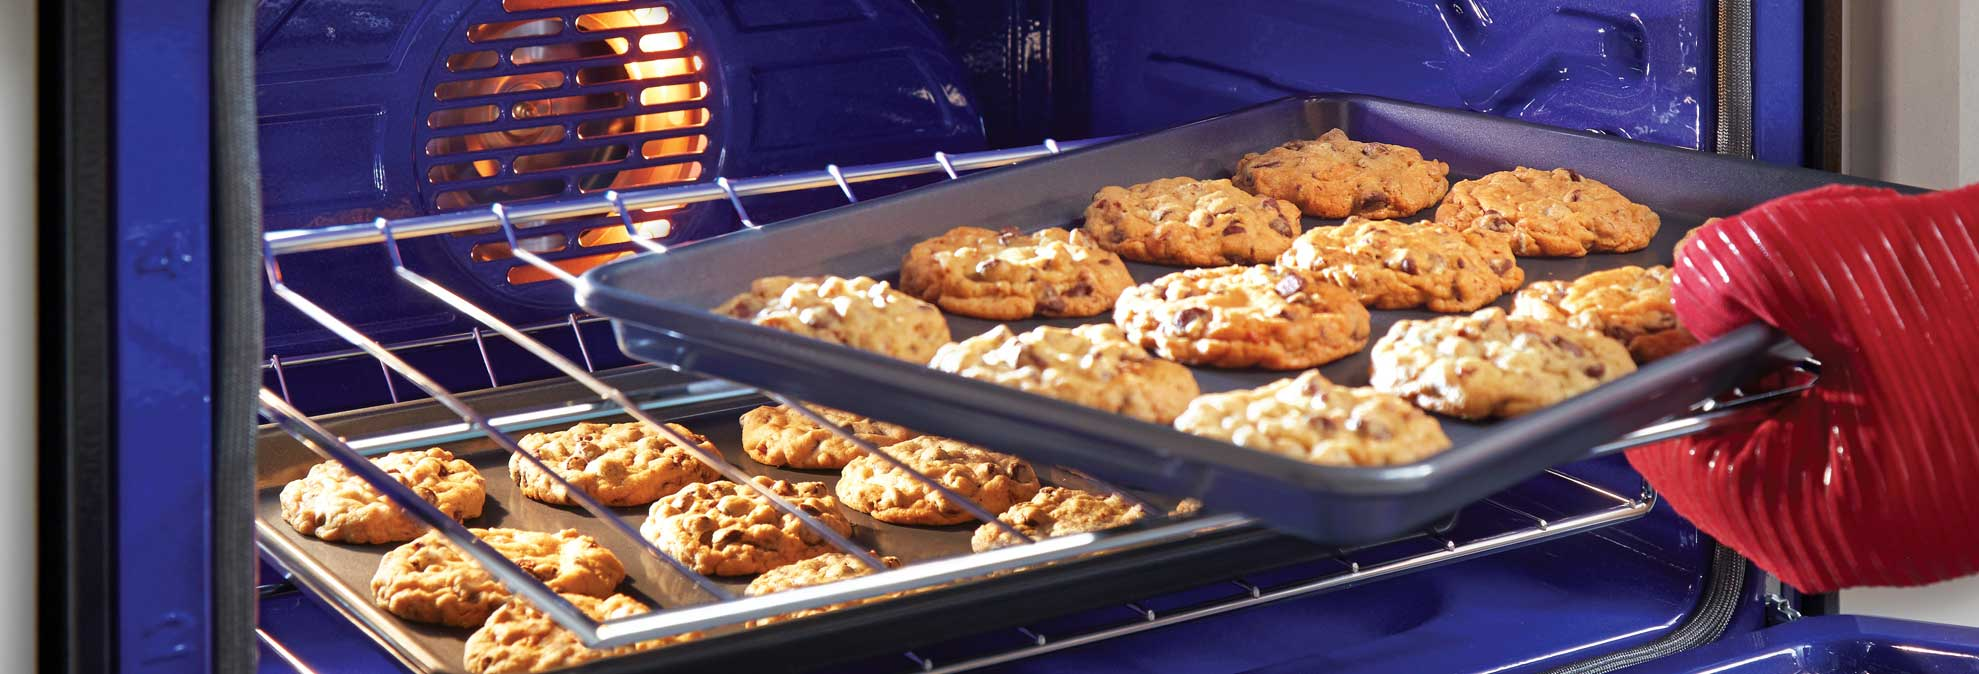 Convection Oven Cooking Tips Consumer Reports